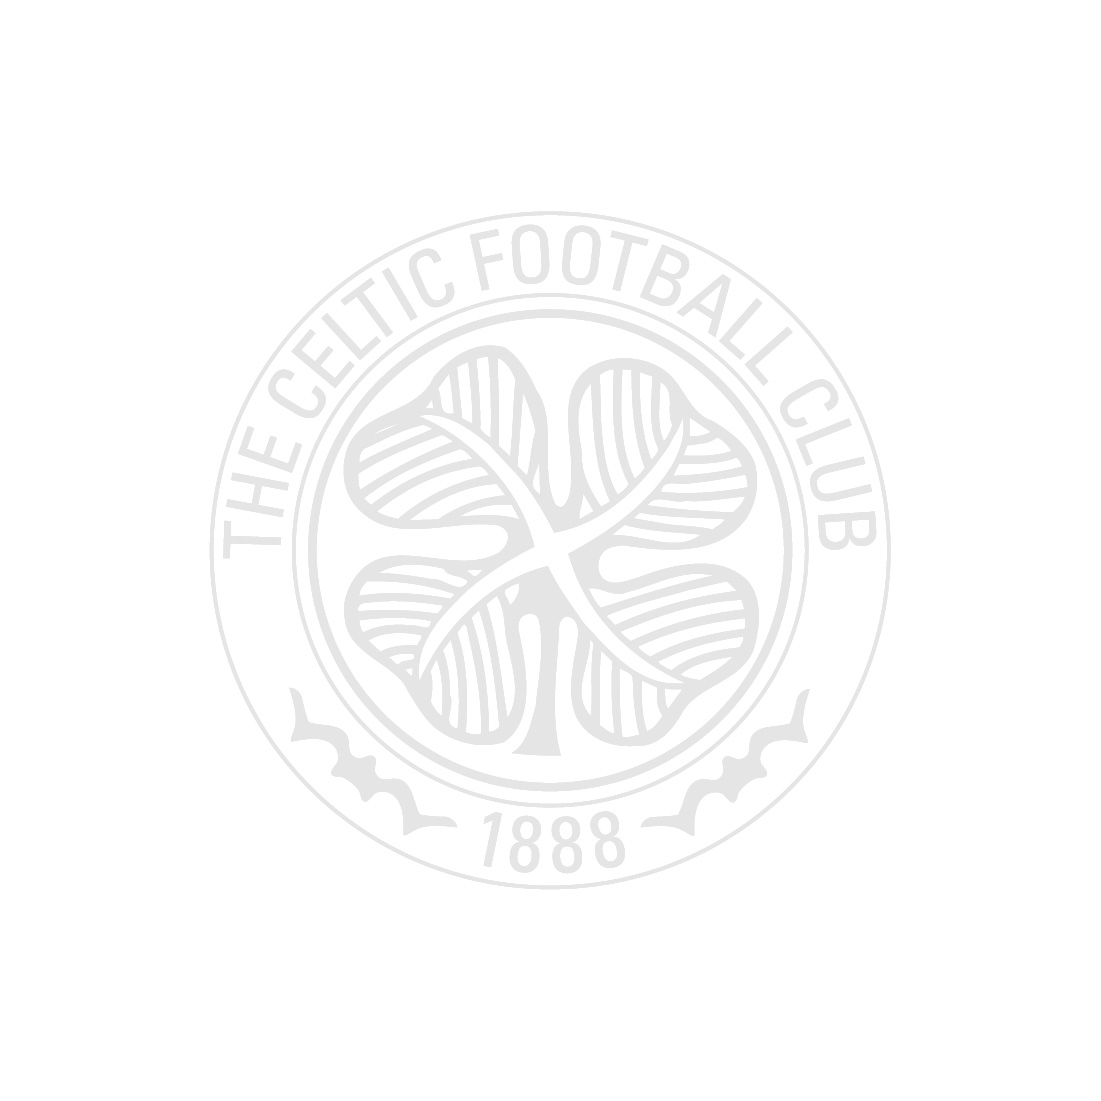 Celtic Passport Holder - Celtic On Tour